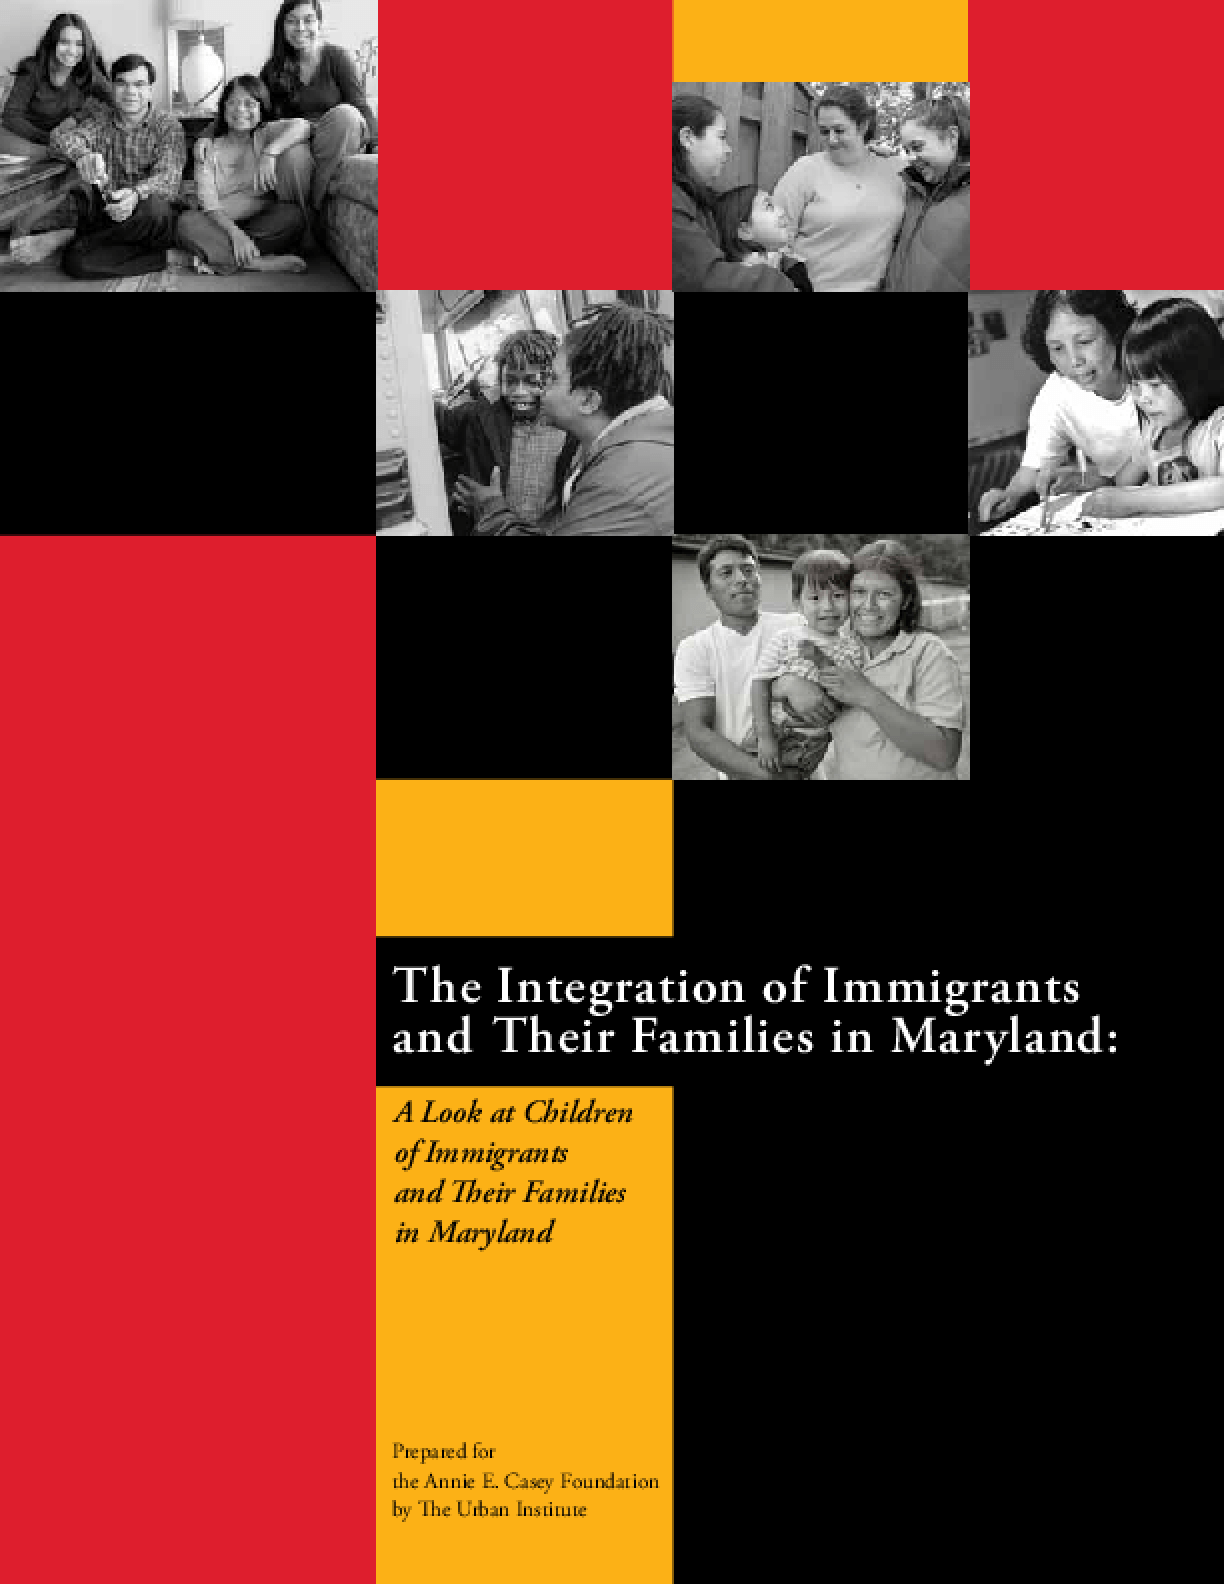 The Integration of Immigrants and Their Families in Maryland: A Look at Children of Immigrants and Their Families in Maryland